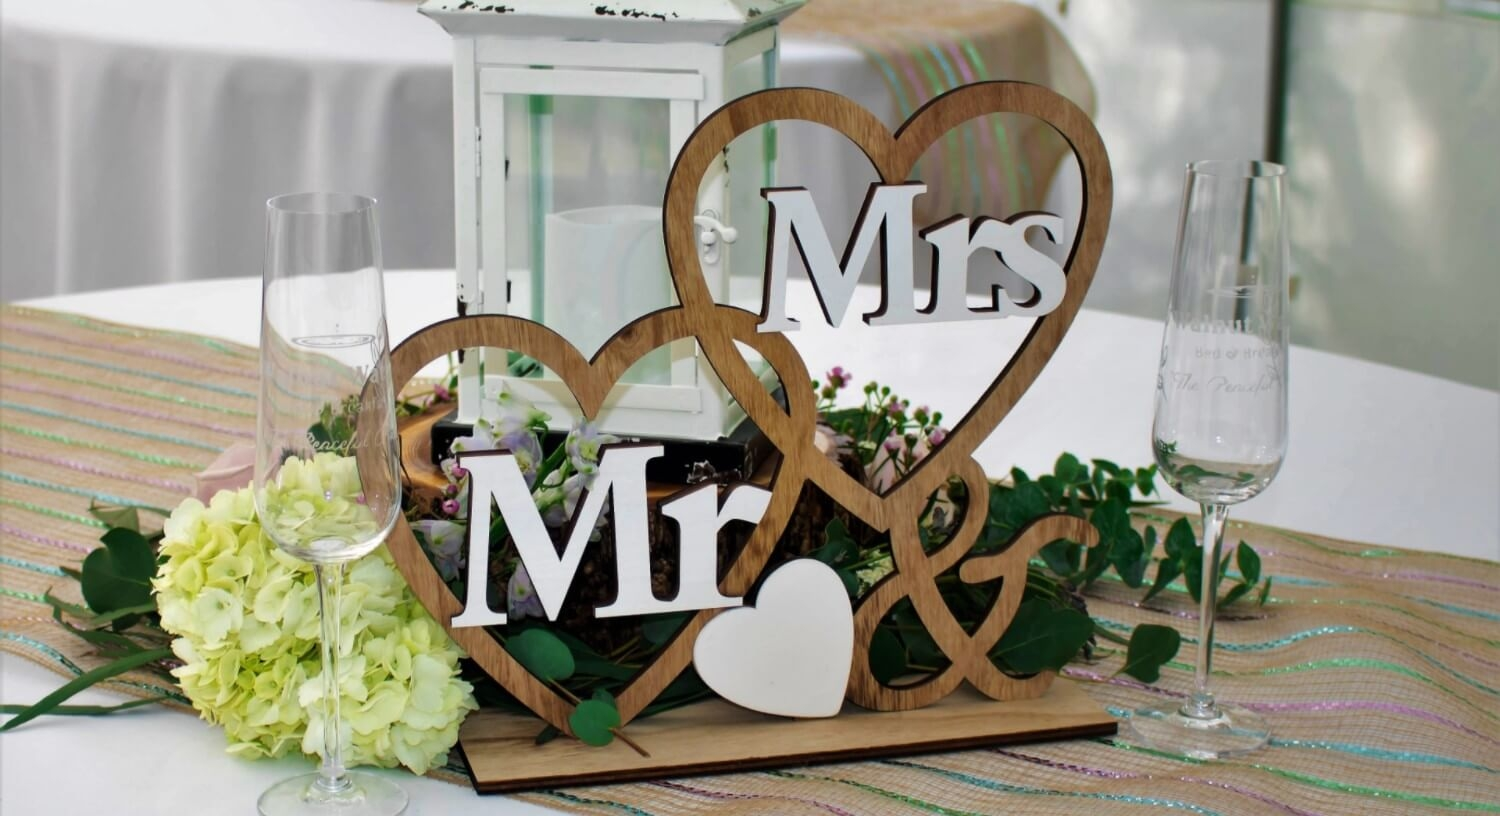 Mr & Mrs wooden centerpiece with fresh white flowers and greenery